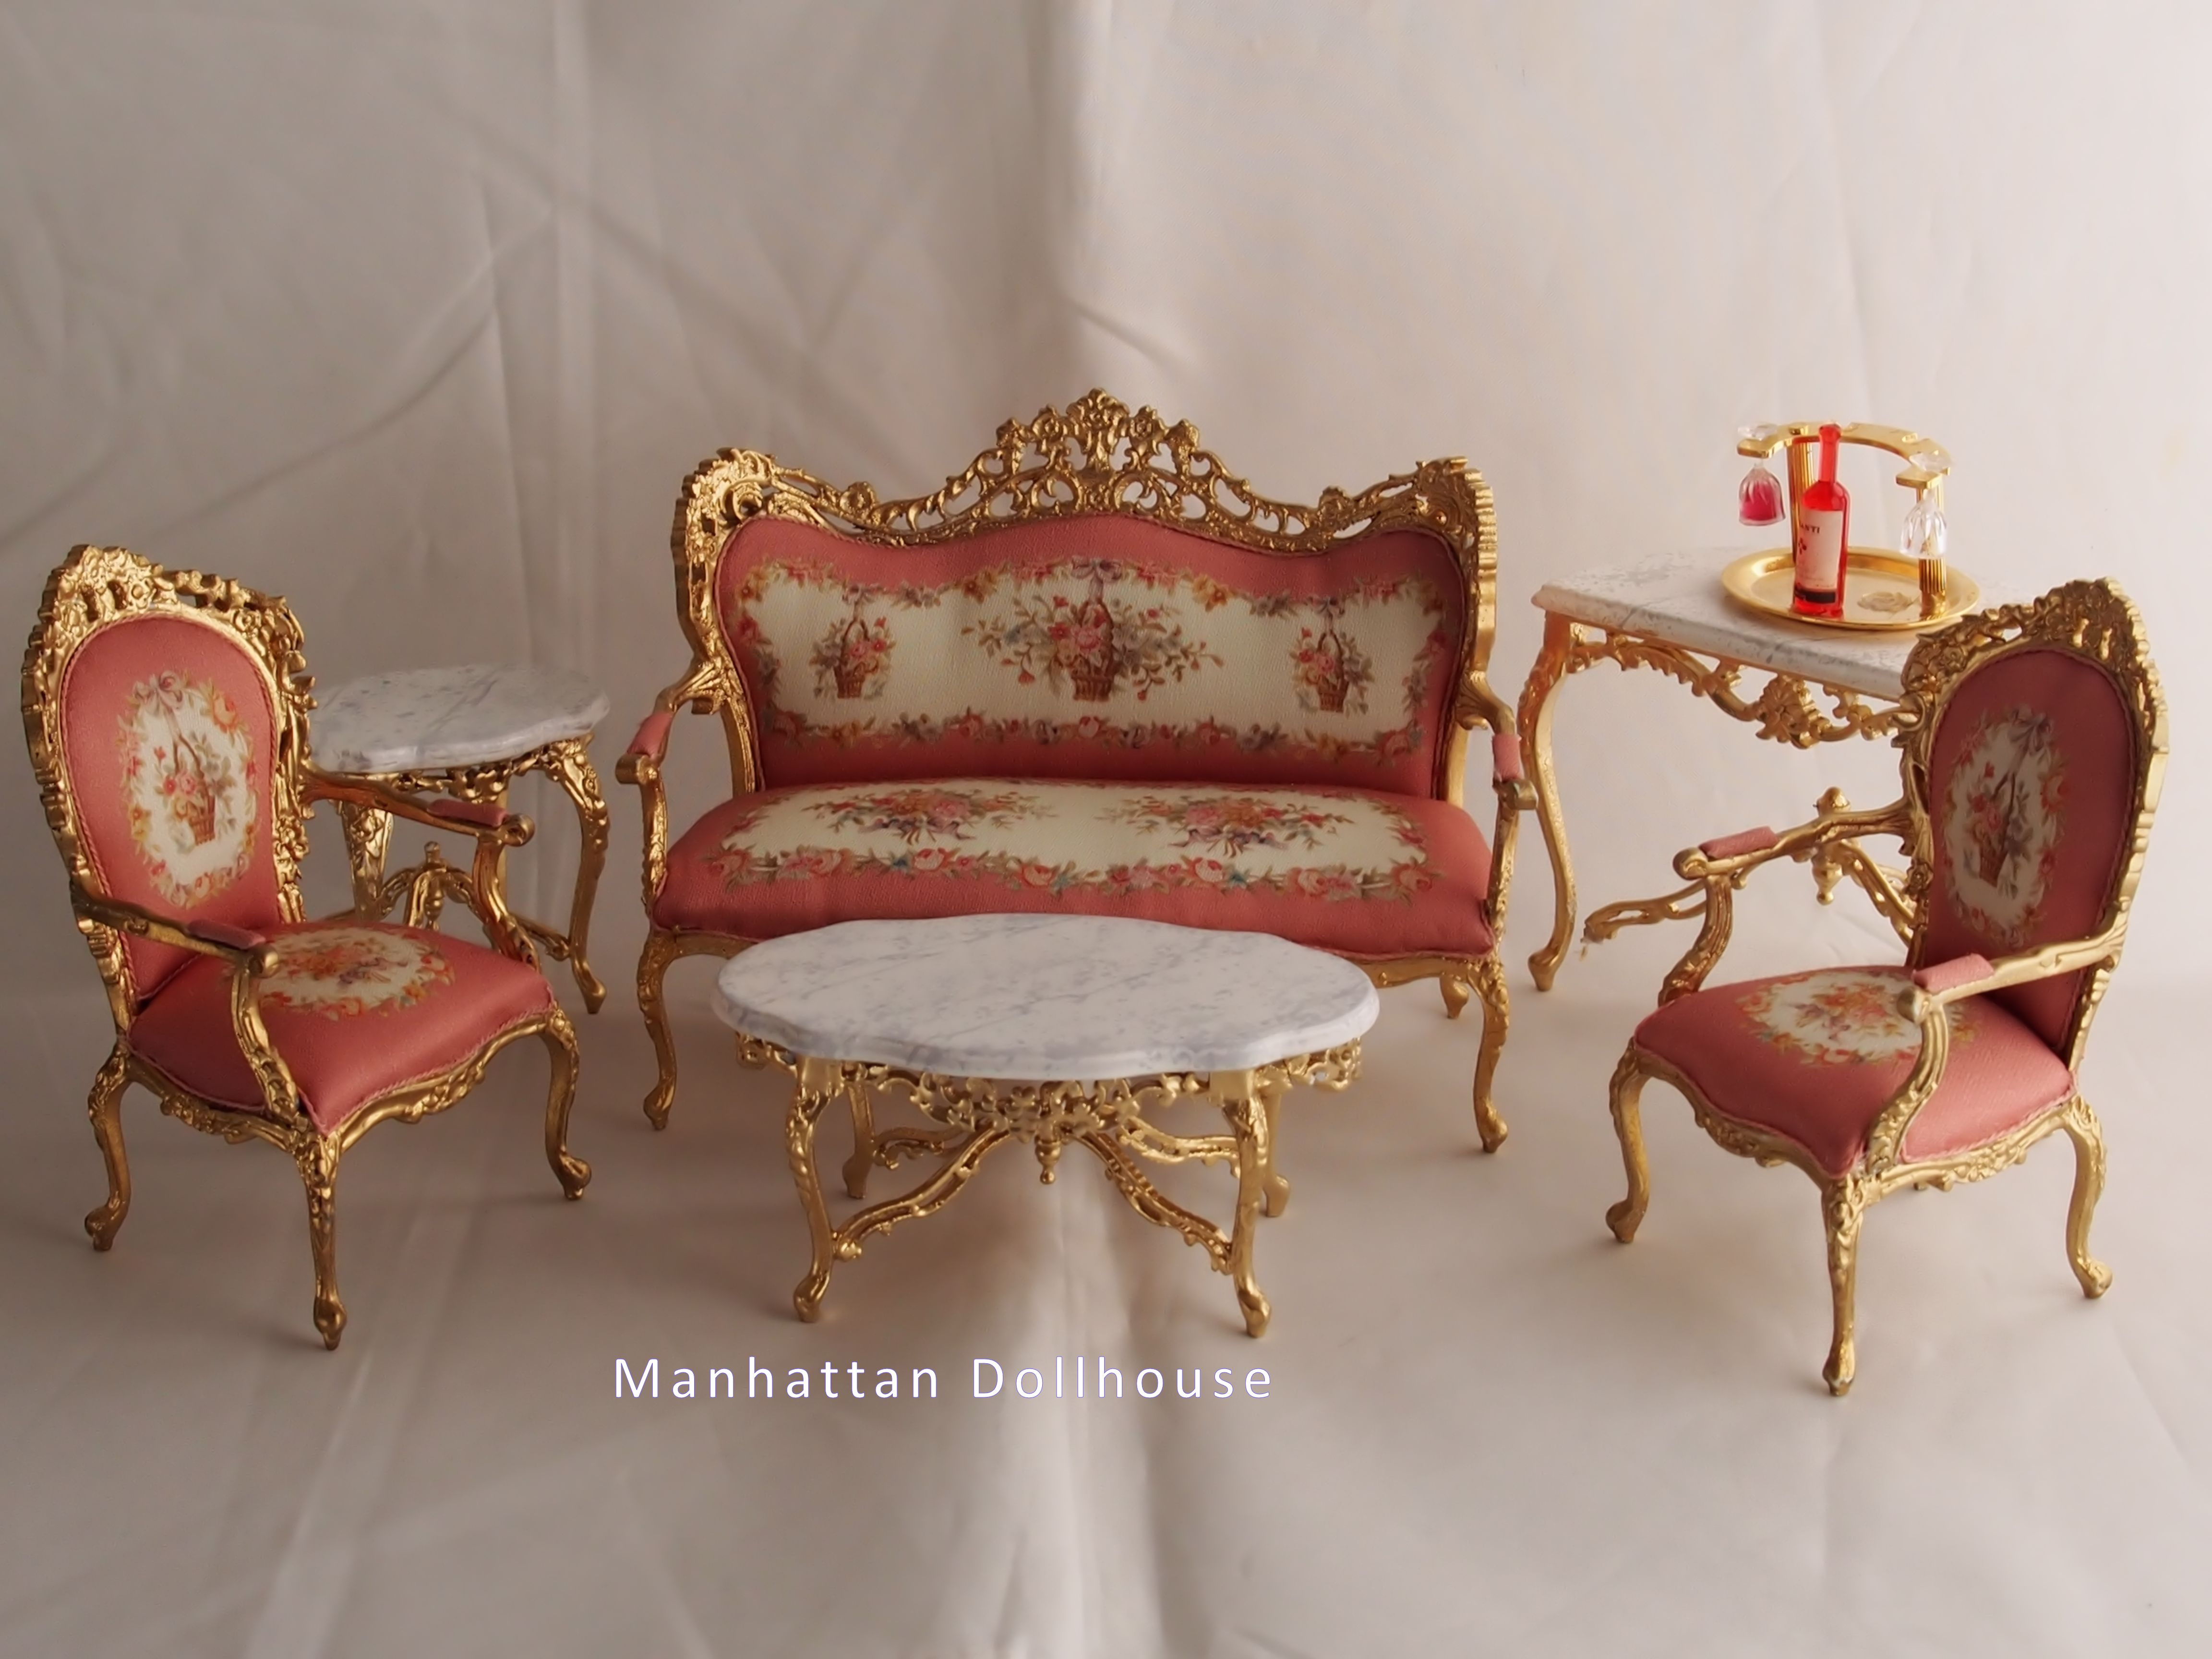 Bespaq Charlotte Living Room Set in Gold & Pink [2795] - $329.00 ...